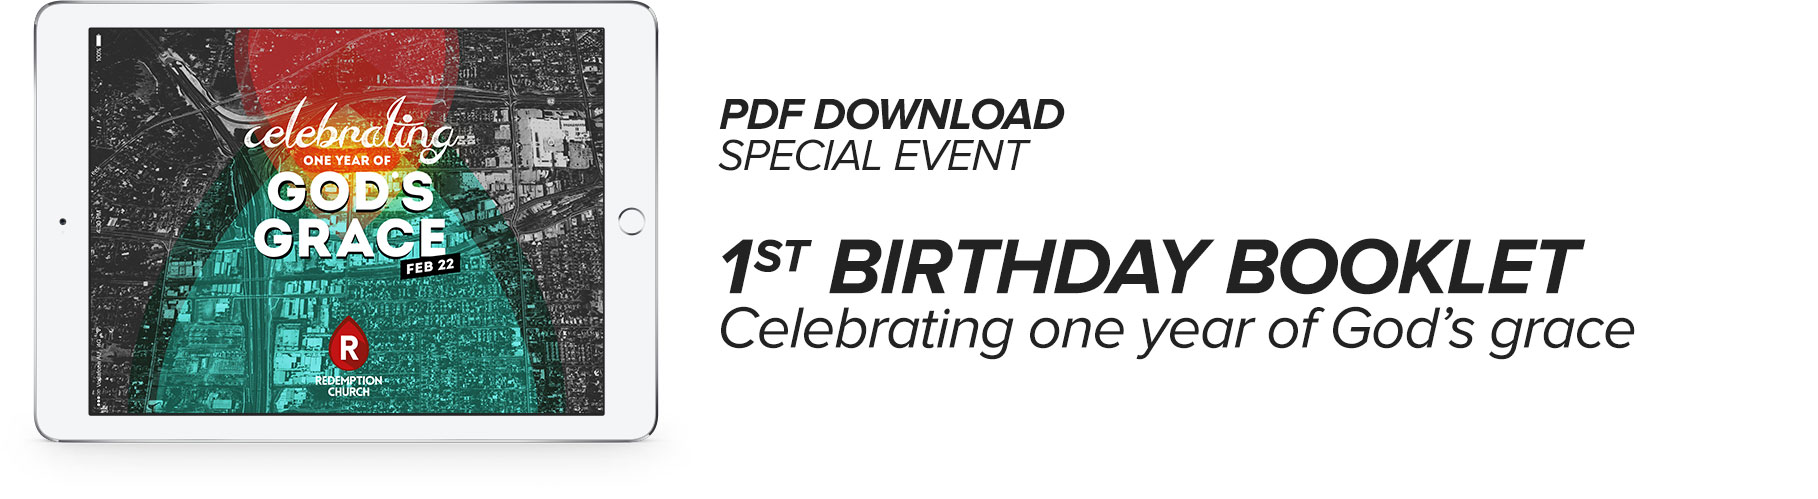 RCBooklet1stBirthday